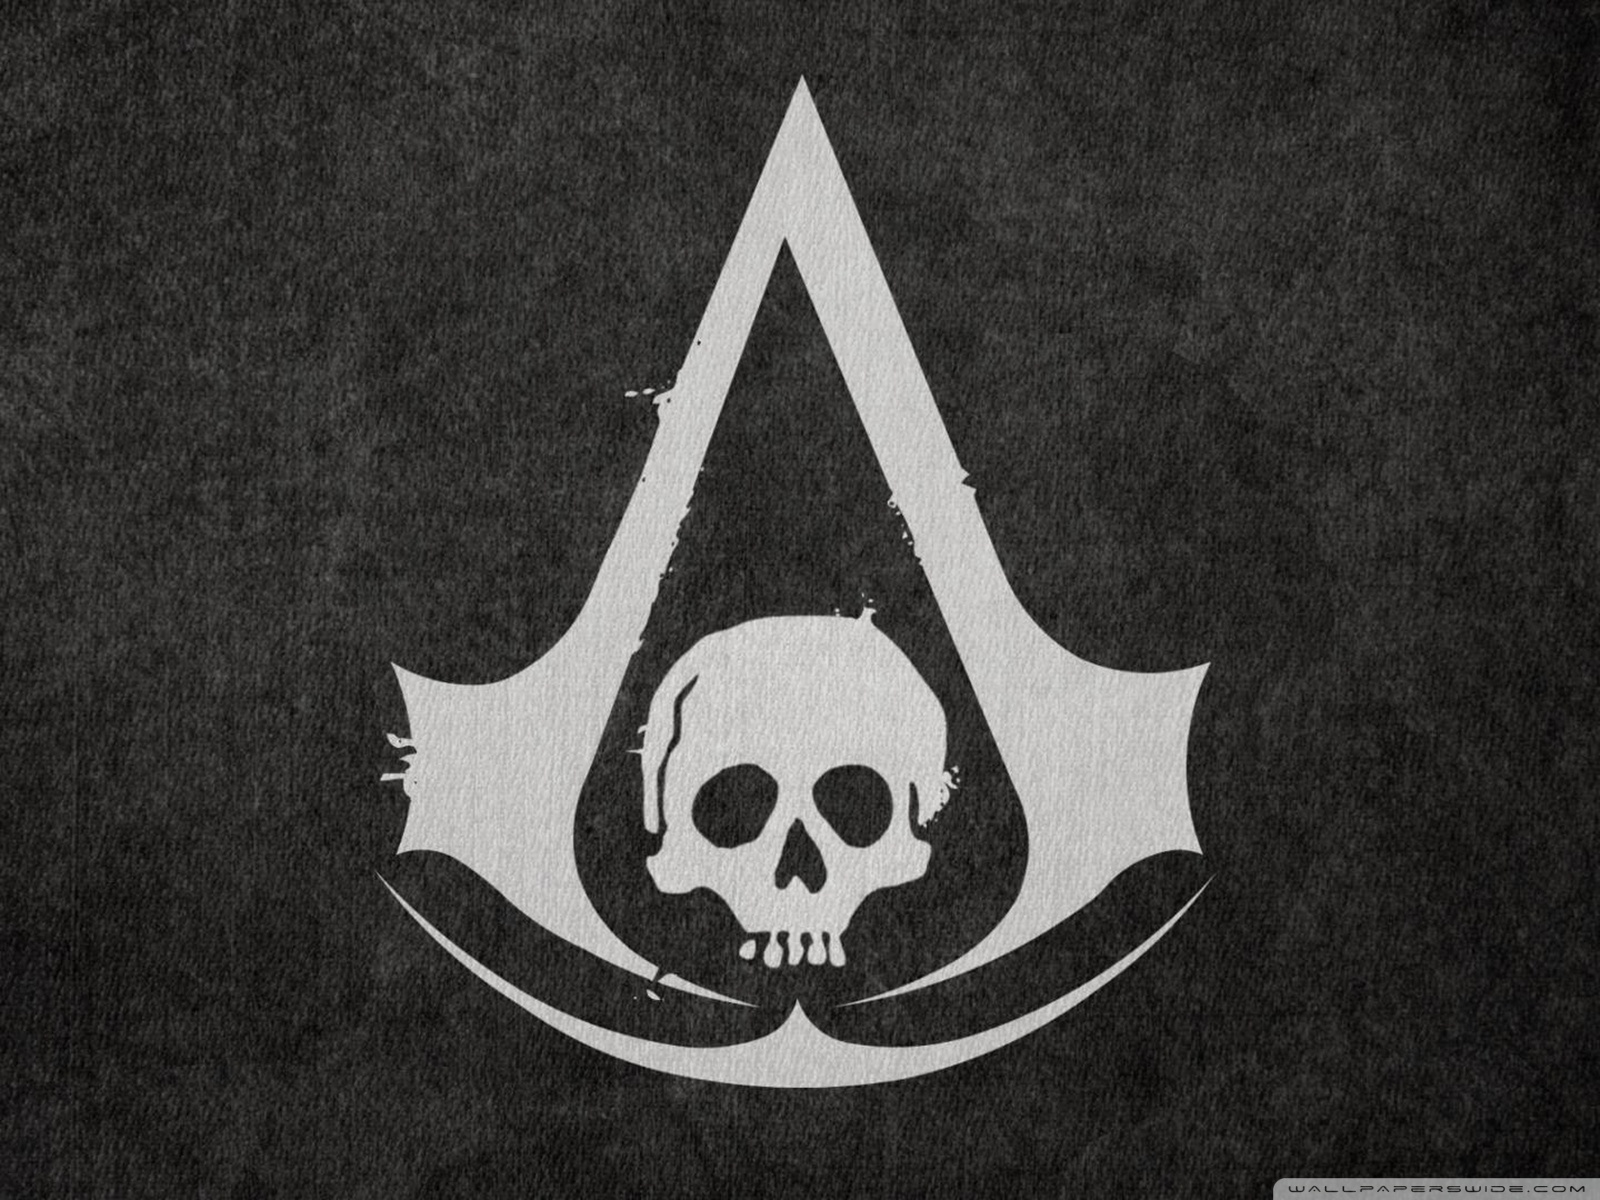 Free Assassins Creed 4 pirate flag phone wallpaper by karliesmom